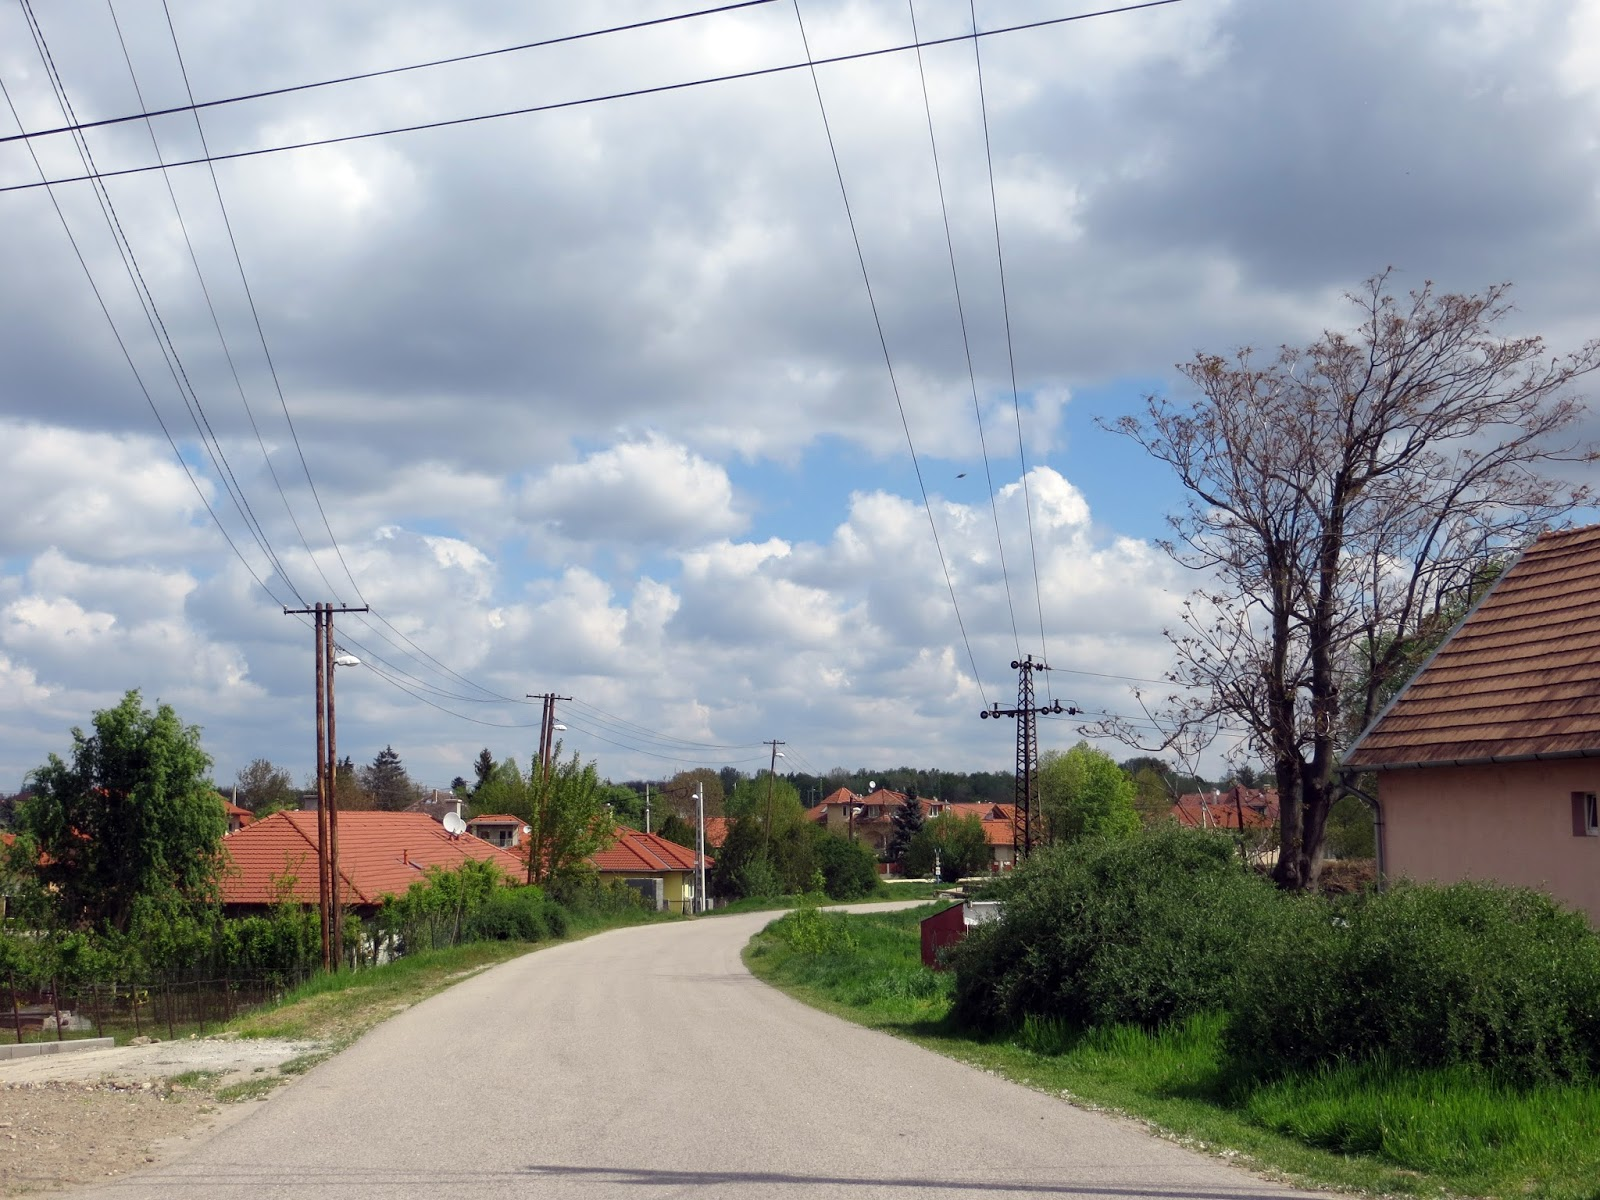 budapest, outskirts, rural, eastern Europe